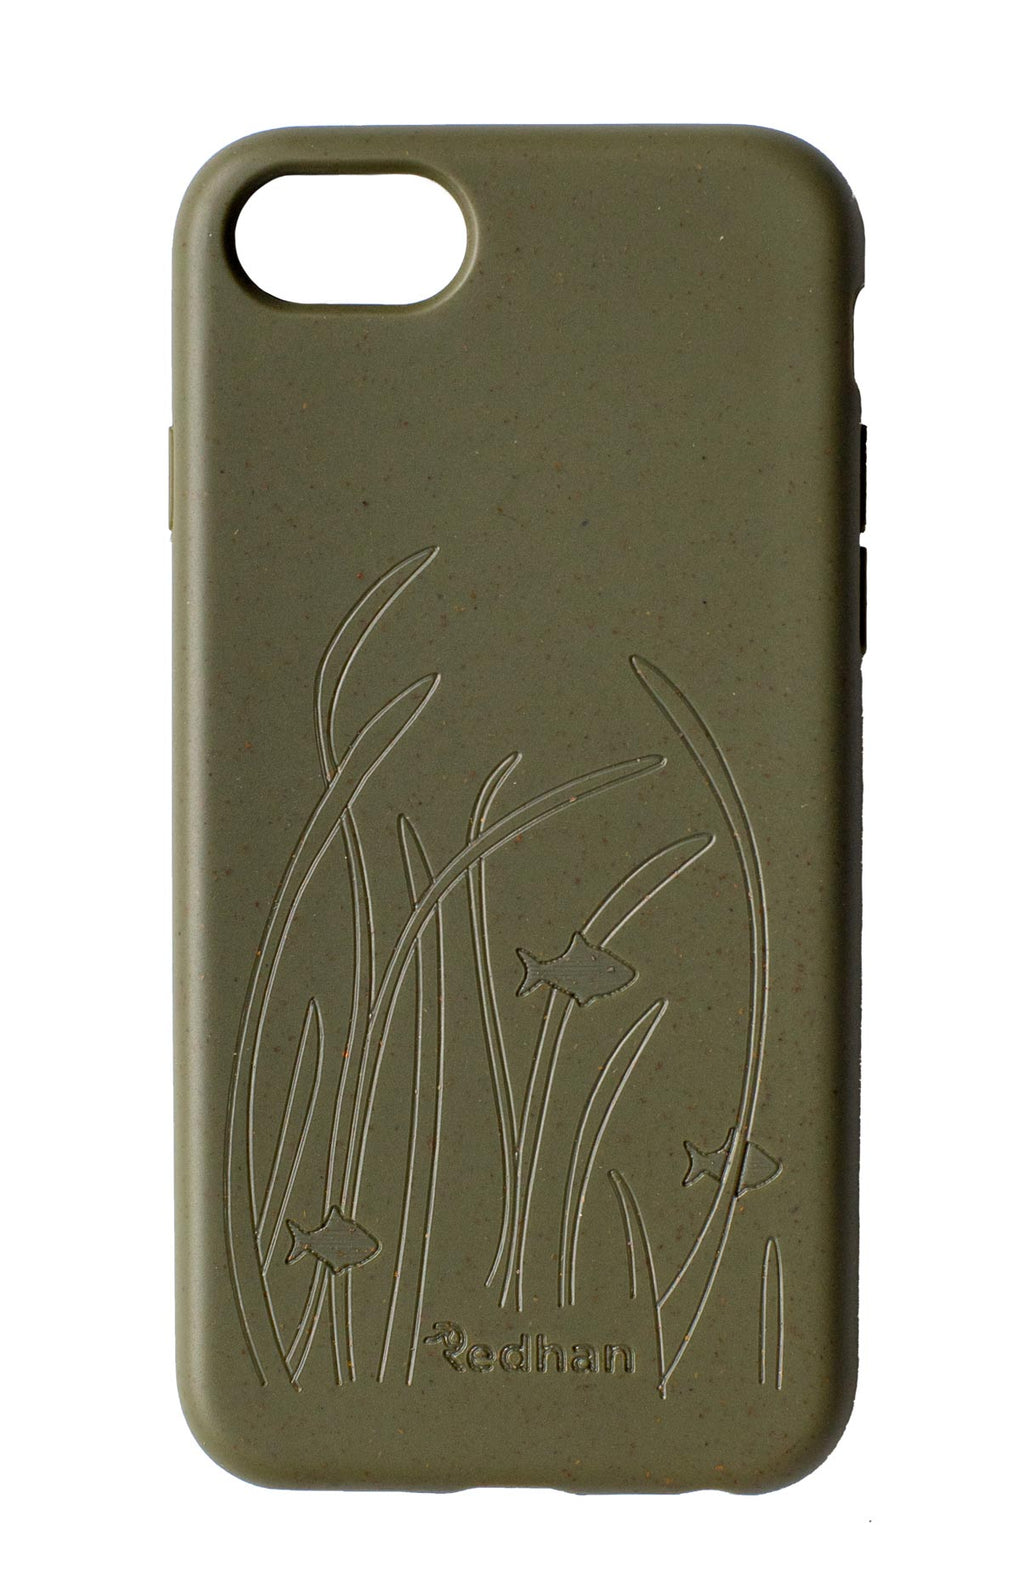 Seagrass in Olive Green -  iPhone 6/6S/7/8/SE(2nd Gen)